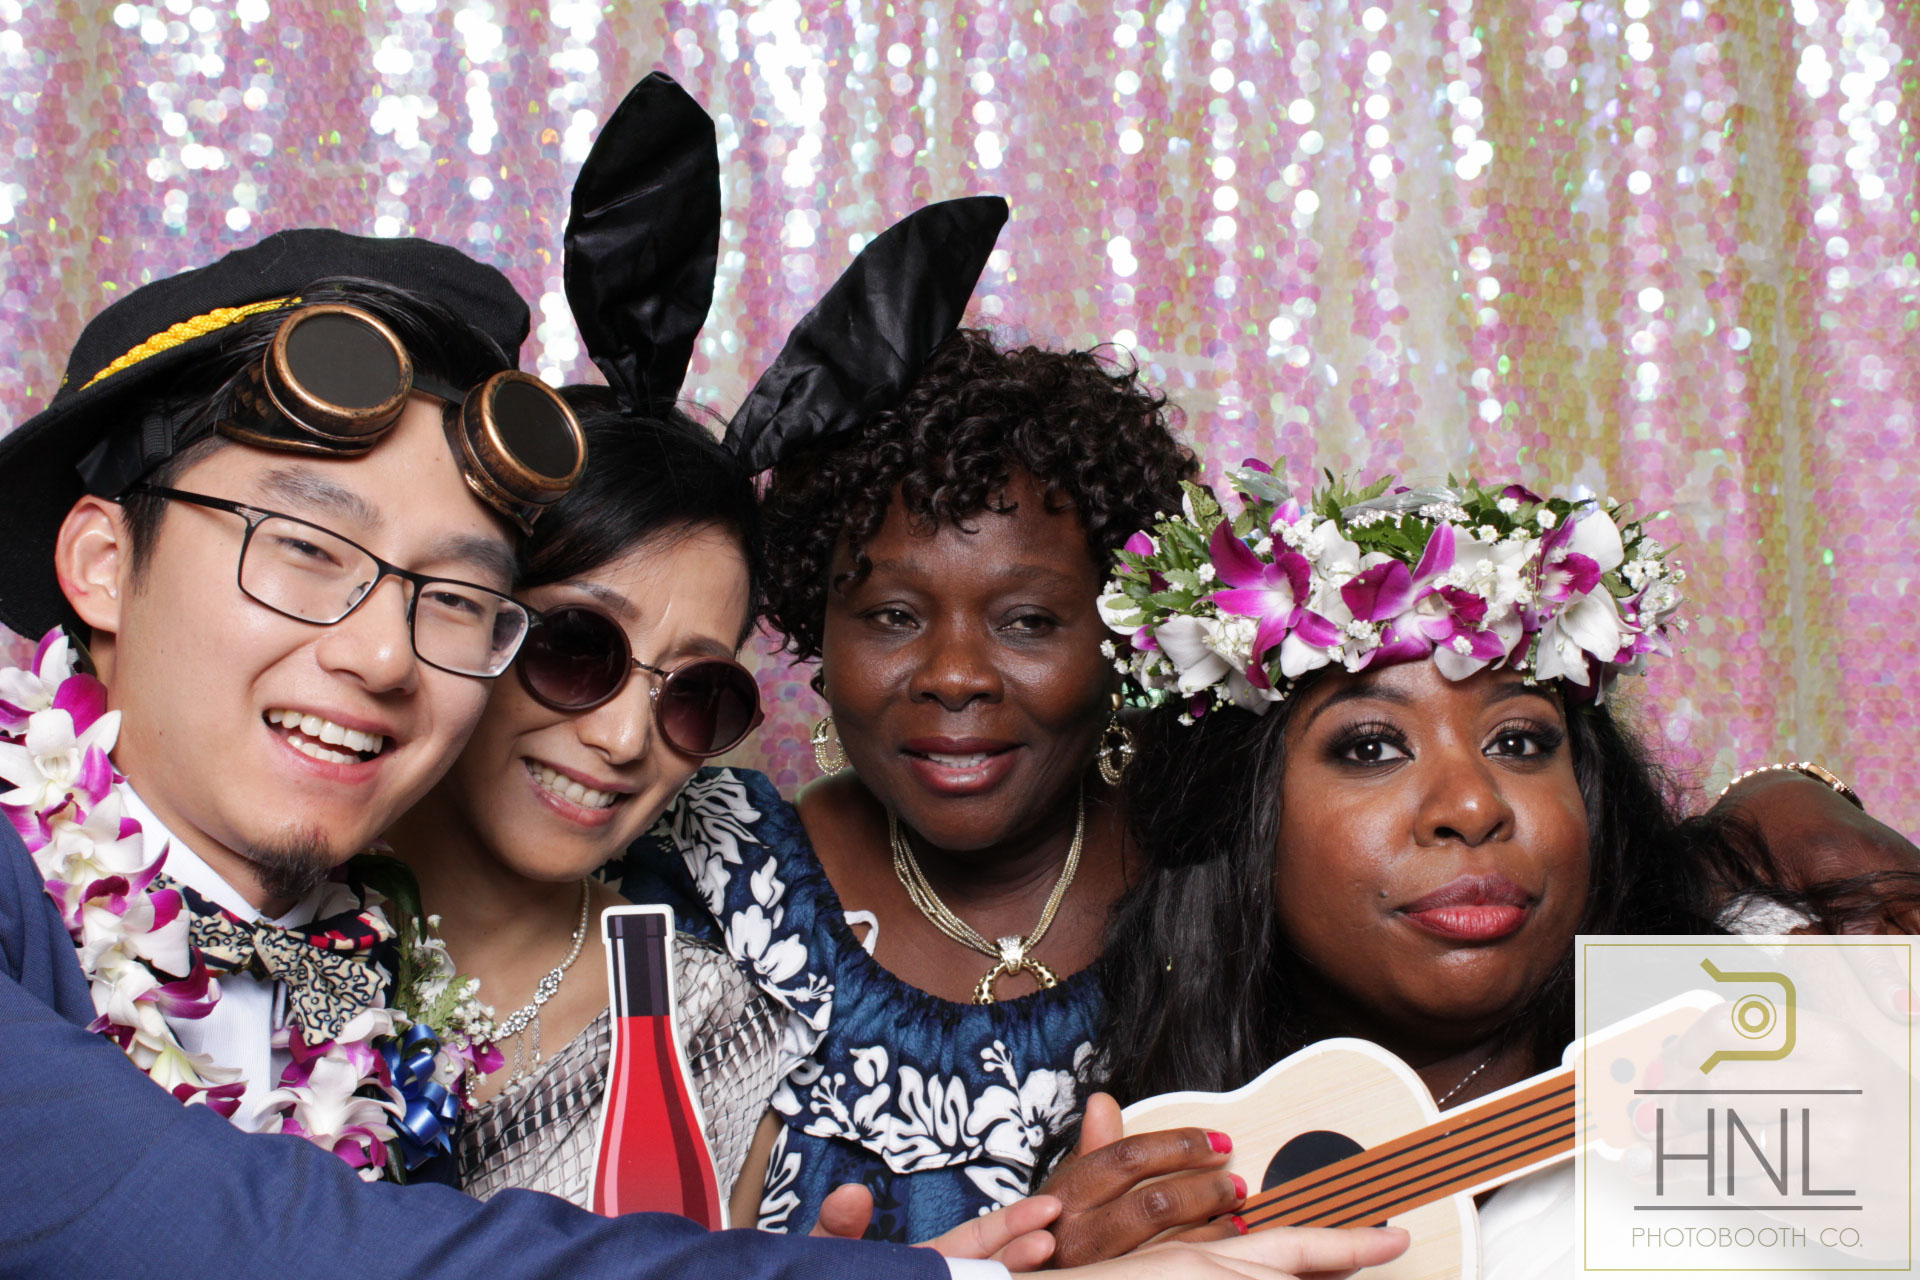 Yemi and Yang Wedding Photo booth Hiltion Hawaiian Village Resort Waikiki Oahu Hawaii -88.jpg